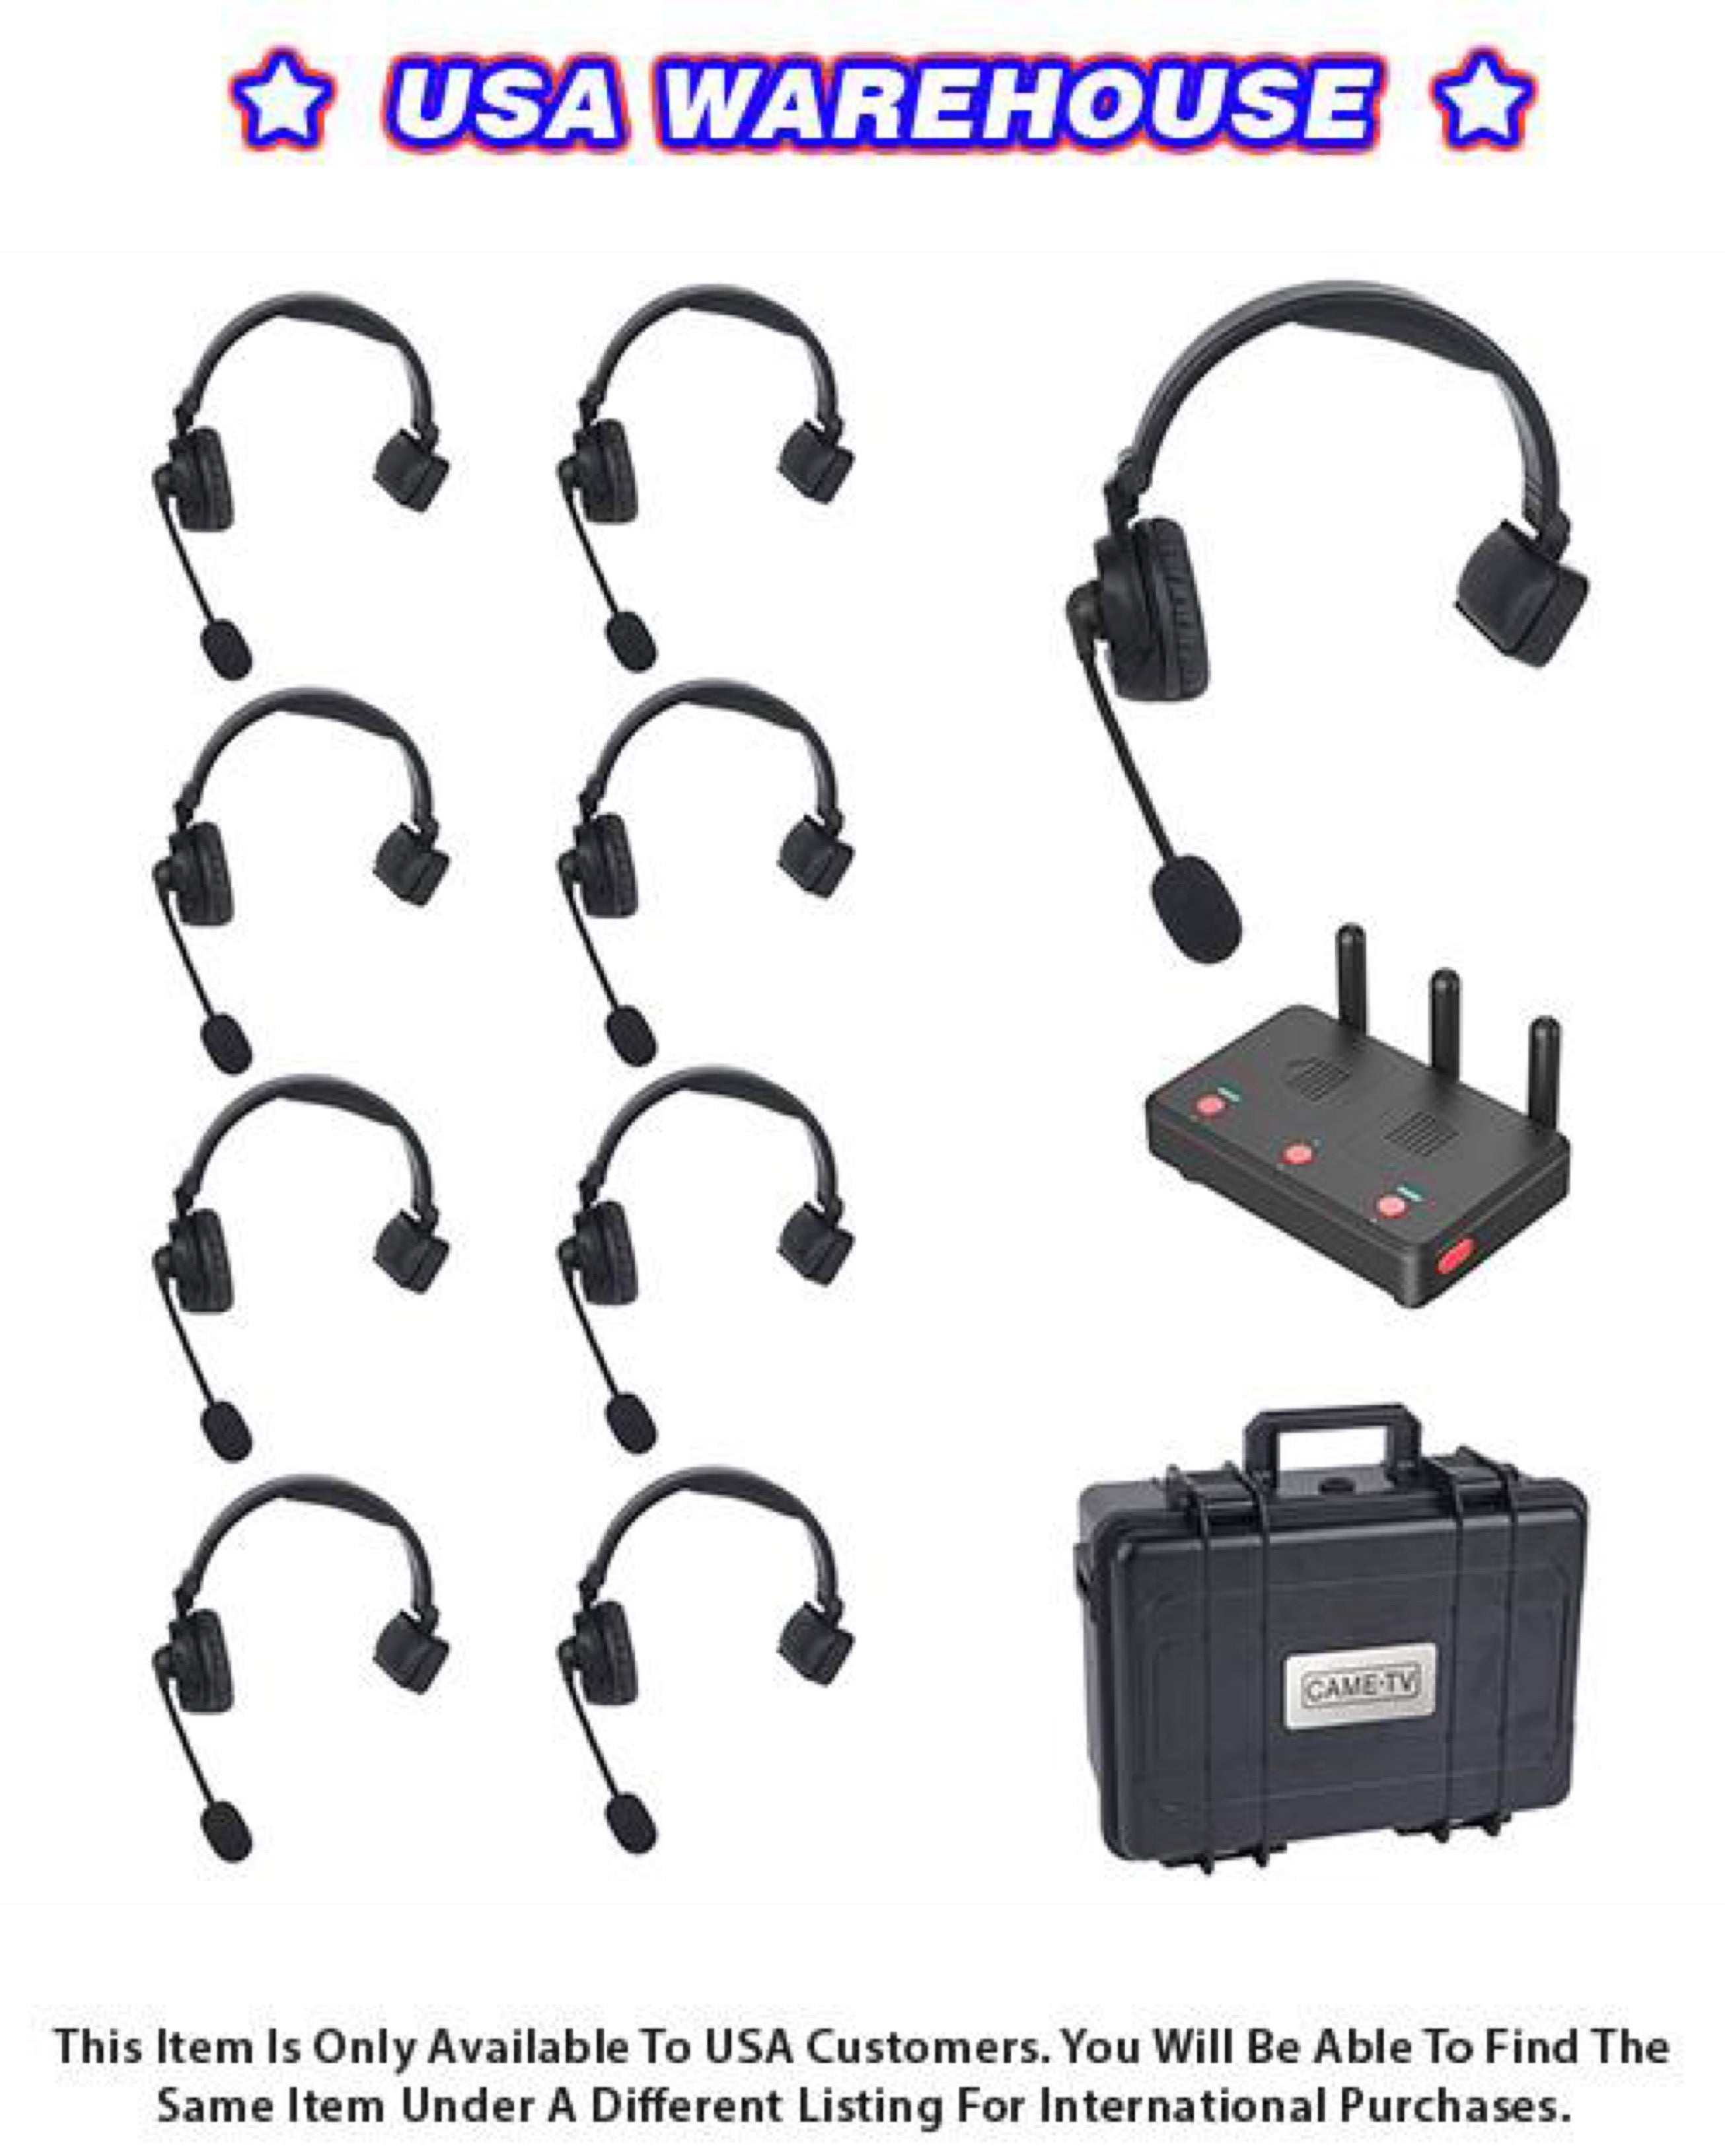 CAME-TV WAERO Duplex Digital Wireless Headset Communication Devices with Hub 9 Pack - USA Warehouse